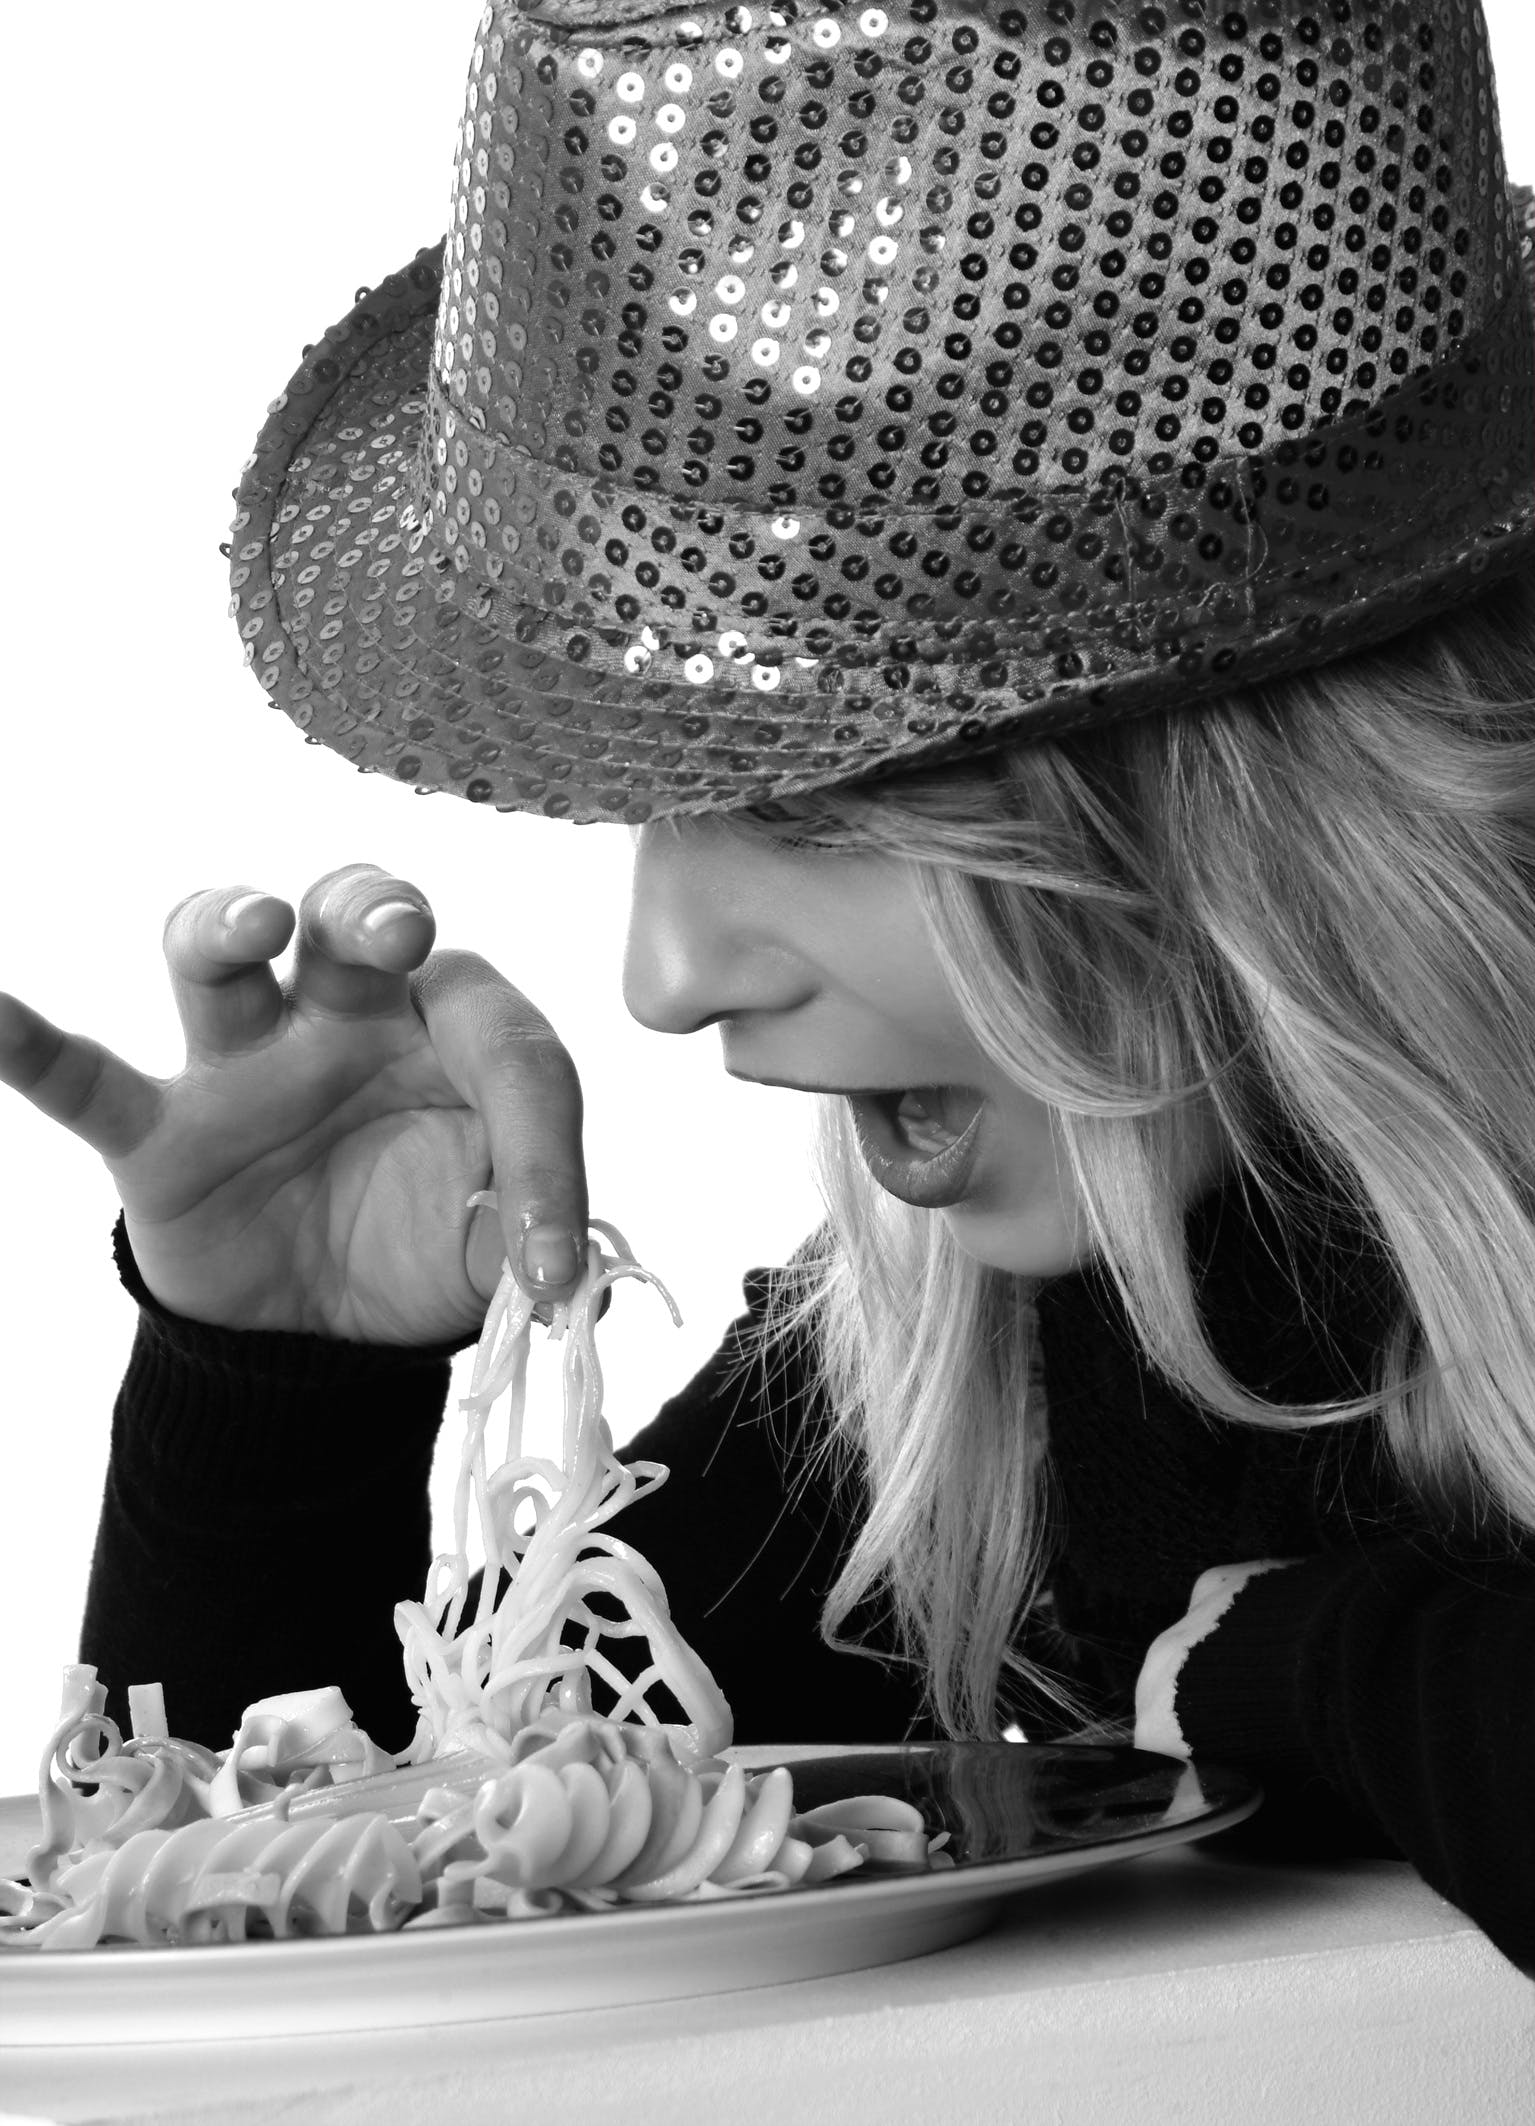 Woman in Sweater and Sequin Fedora Hat Holding Noodles in Grayscale Photography